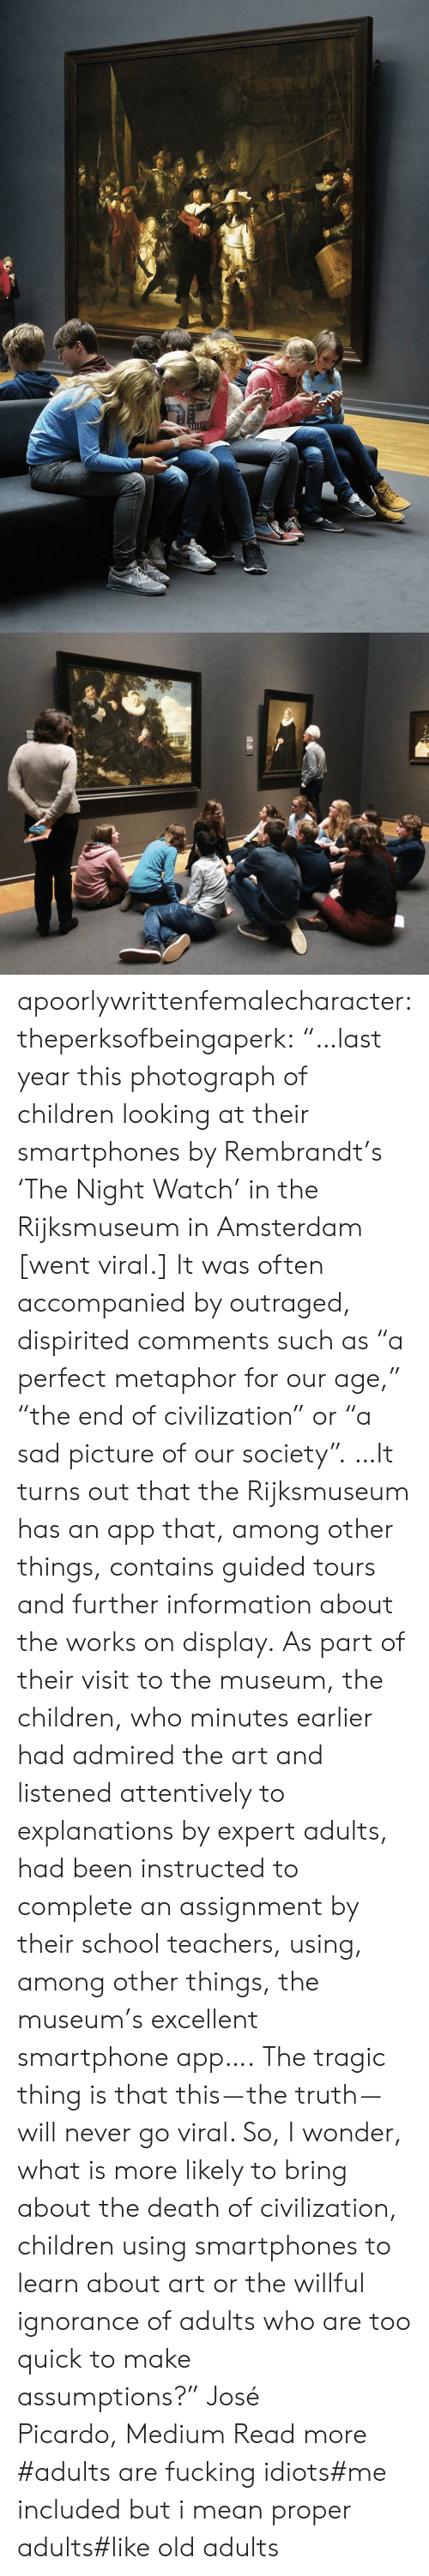 "Willful Ignorance: apoorlywrittenfemalecharacter: theperksofbeingaperk:  ""…last year this photograph of children looking at their smartphones by Rembrandt's 'The Night Watch' in the Rijksmuseum in Amsterdam [went viral.] It was often accompanied by outraged, dispirited comments such as ""a perfect metaphor for our age,"" ""the end of civilization"" or ""a sad picture of our society"". …It turns out that the Rijksmuseum has an app that, among other things, contains guided tours and further information about the works on display. As part of their visit to the museum, the children, who minutes earlier had admired the art and listened attentively to explanations by expert adults, had been instructed to complete an assignment by their school teachers, using, among other things, the museum's excellent smartphone app….   The tragic thing is that this — the truth — will never go viral. So, I wonder, what is more likely to bring about the death of civilization, children using smartphones to learn about art or the willful ignorance of adults who are too quick to make assumptions?"" José Picardo, Medium Read more    #adults are fucking idiots#me included but i mean proper adults#like old adults"